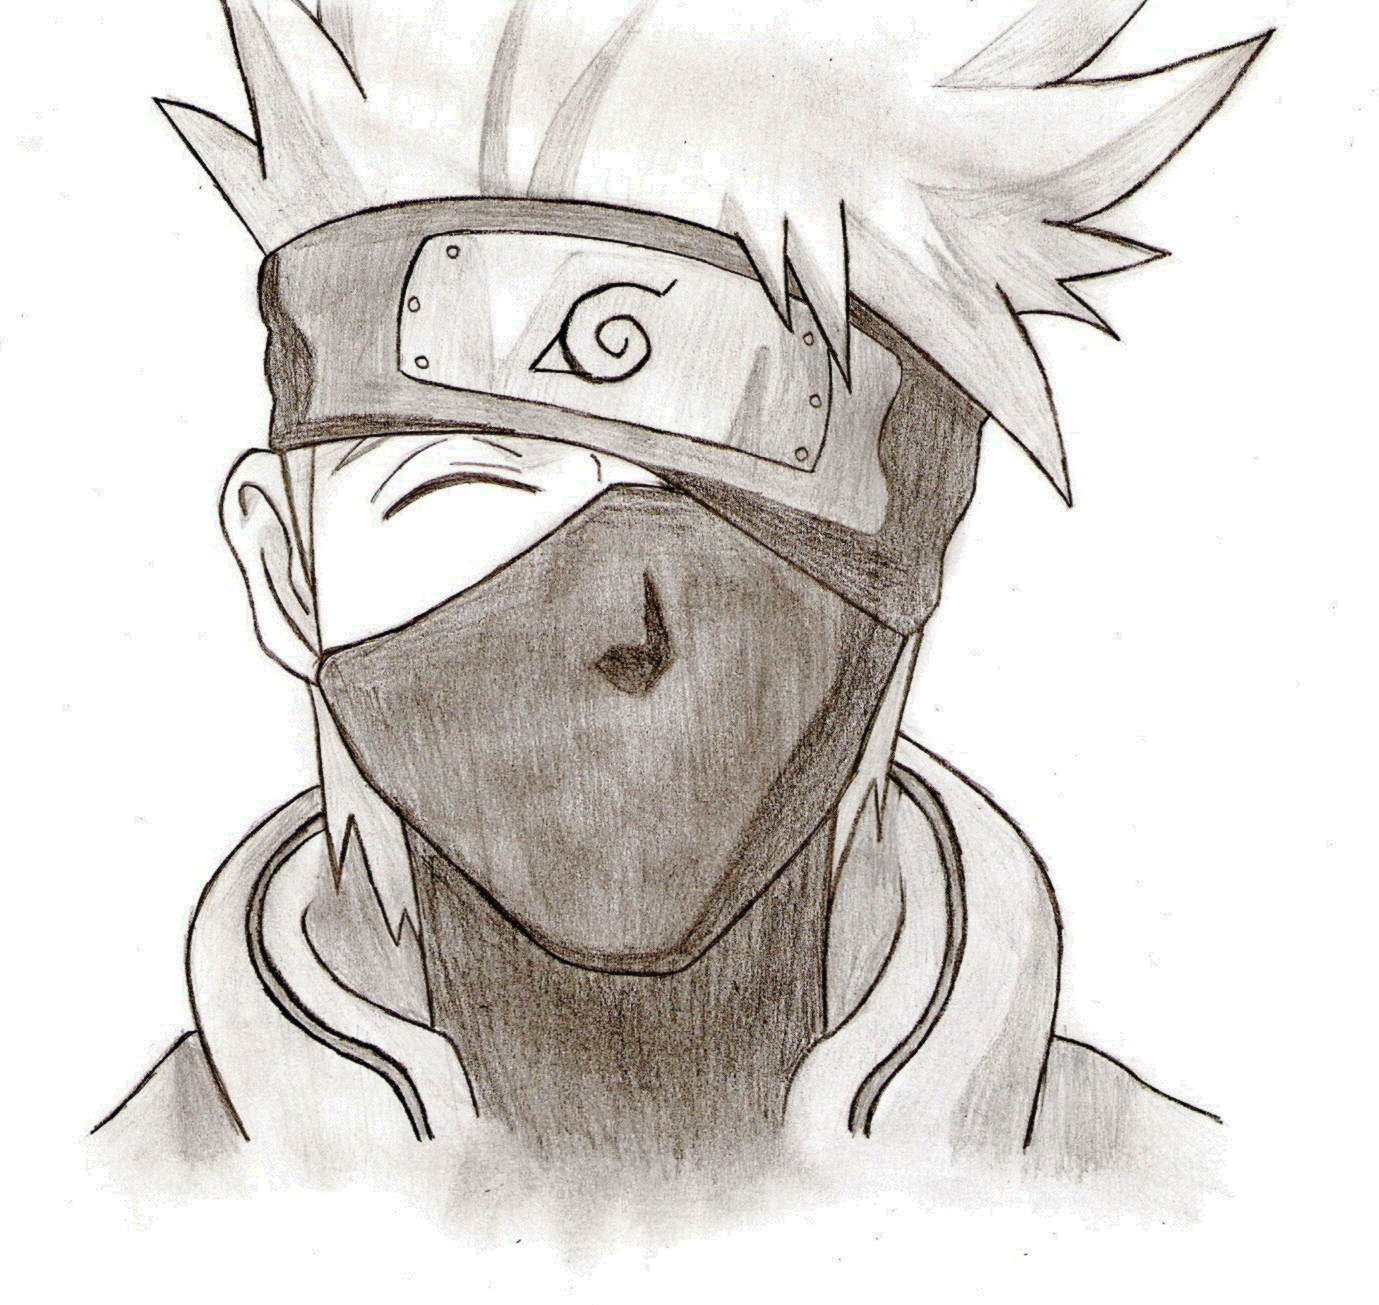 Kakashi Hatake by cheshire5 on DeviantArt